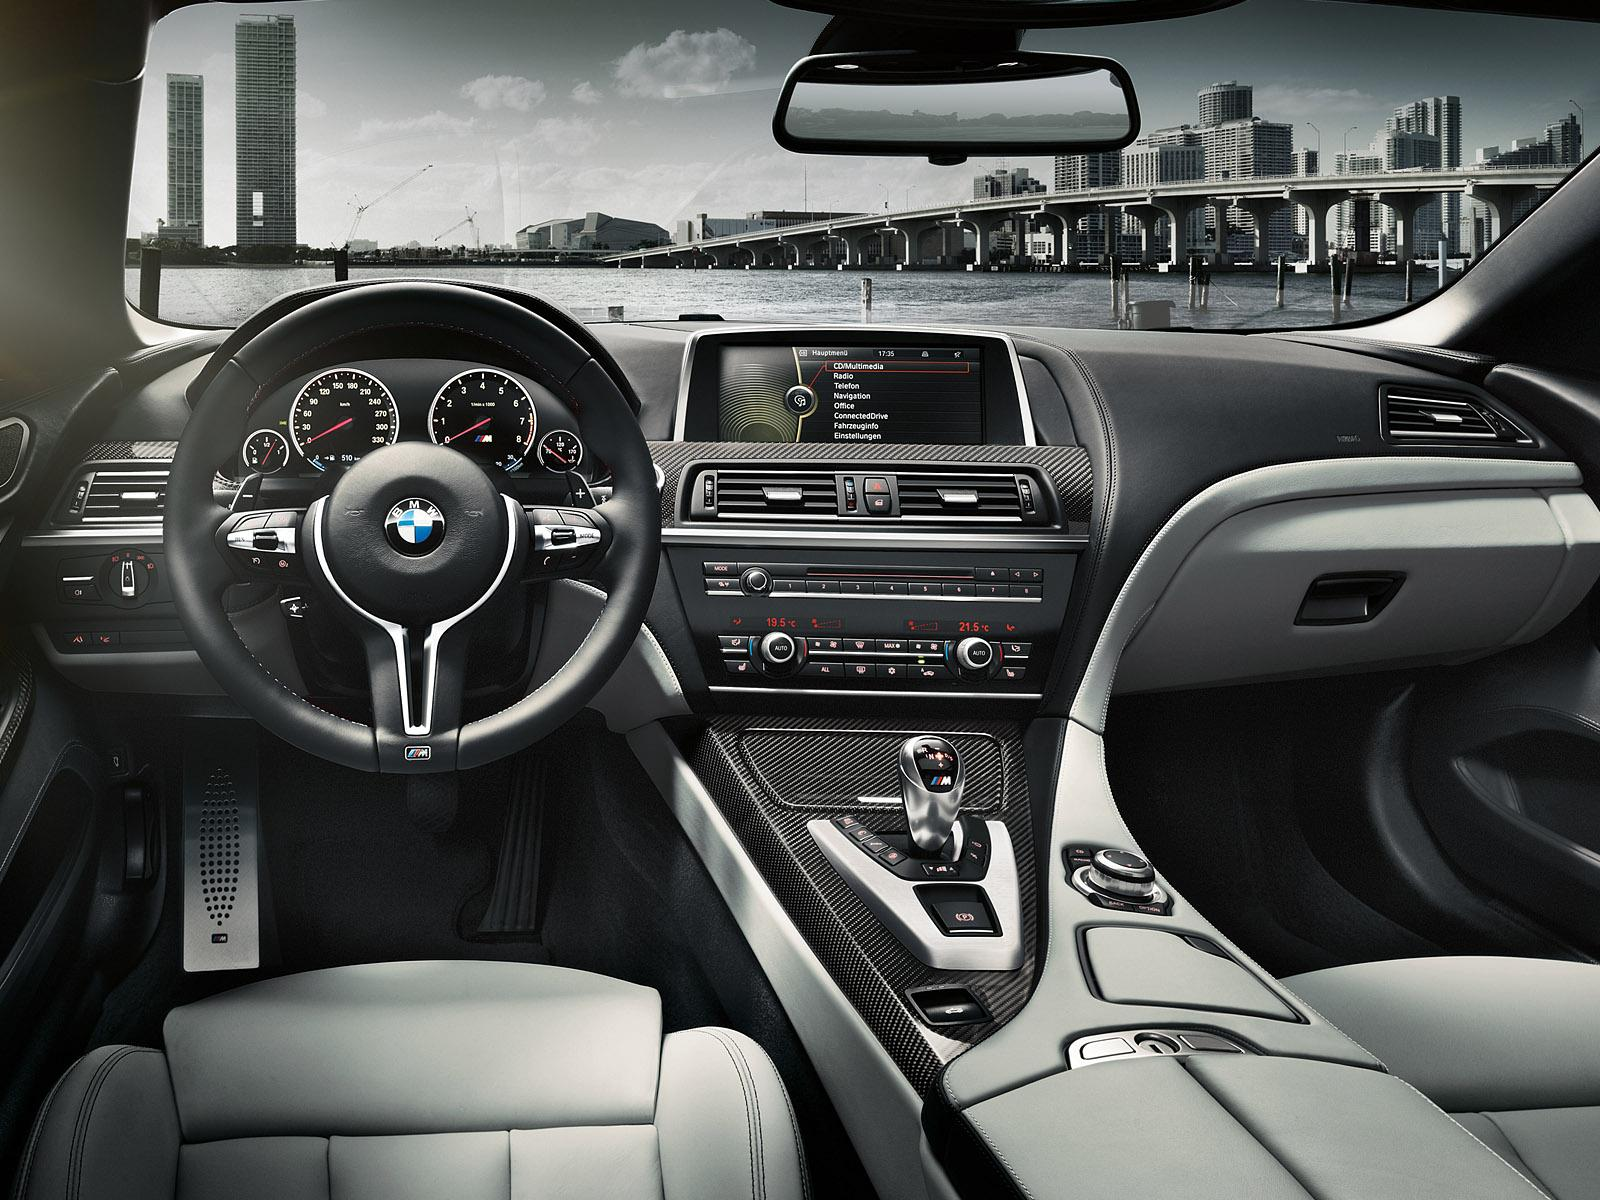 100 Hot Cars 187 2013 Bmw M6 Coupe